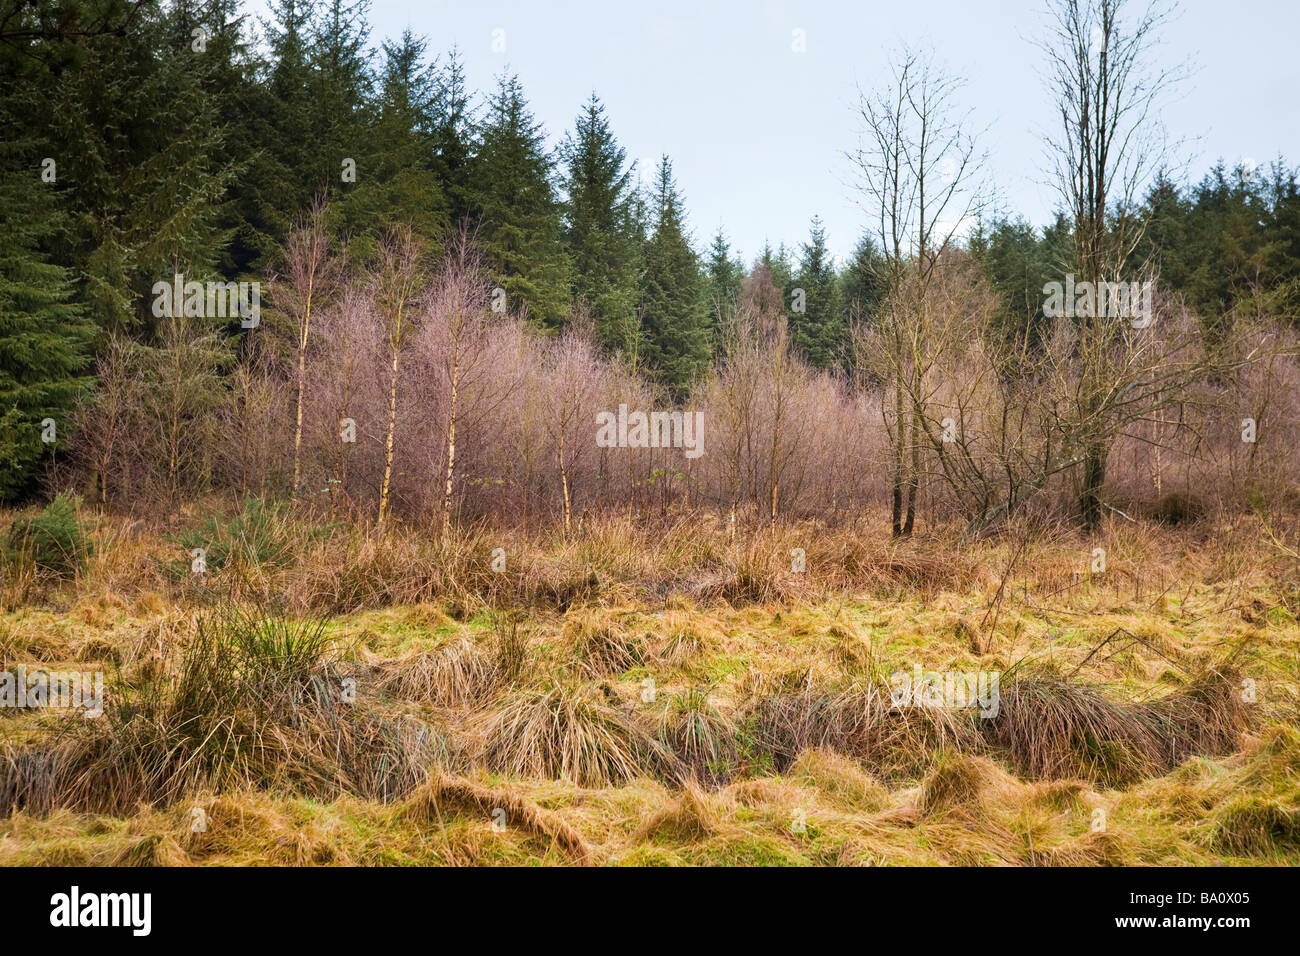 Cropton coniferous forest in winter UK - Stock Image